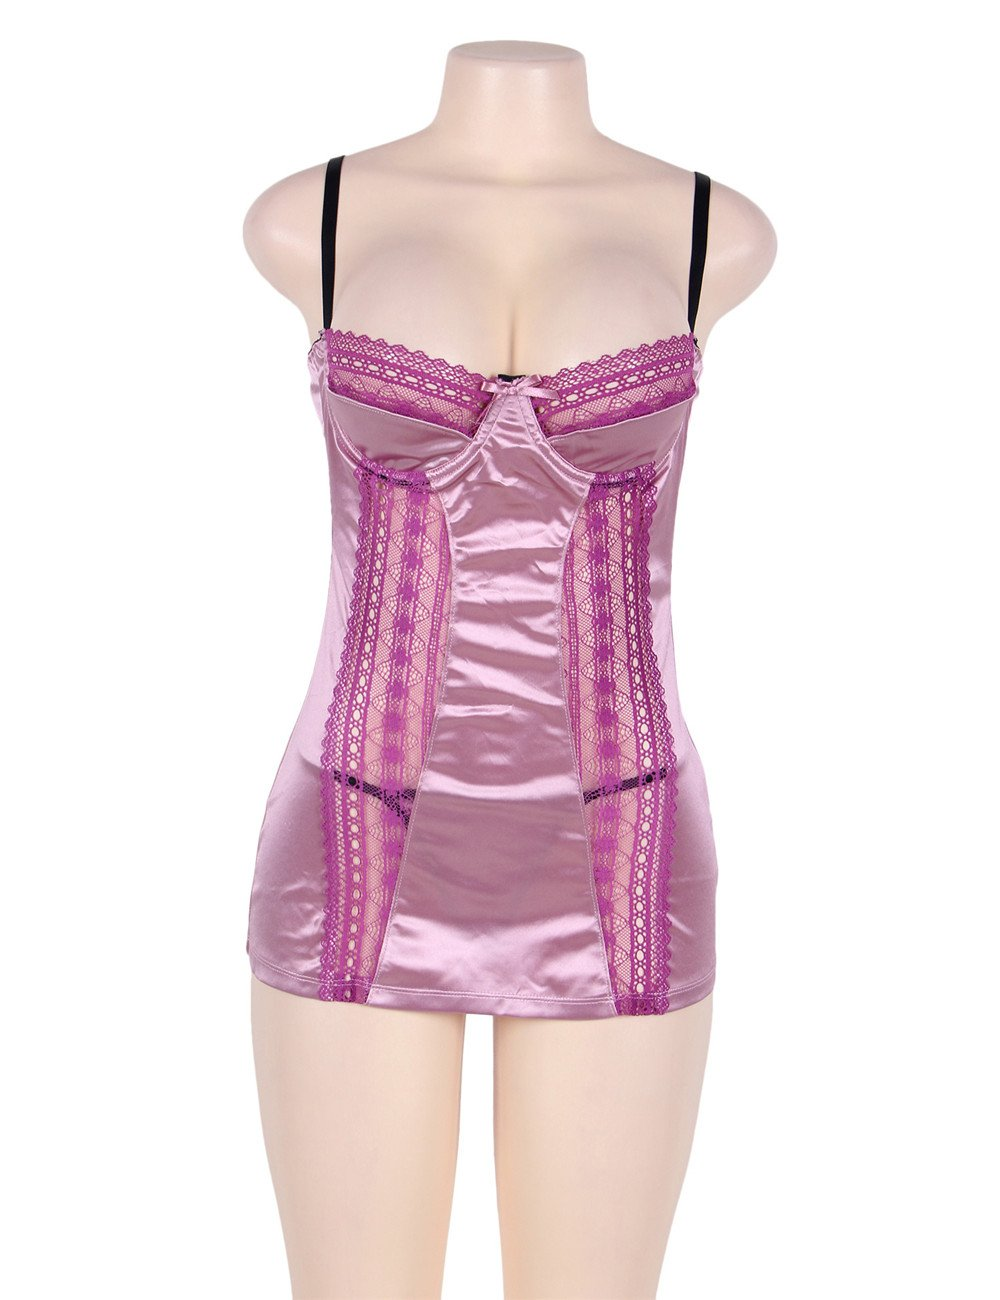 Pink Satin And Purple Lace Chemise Lingerie Set